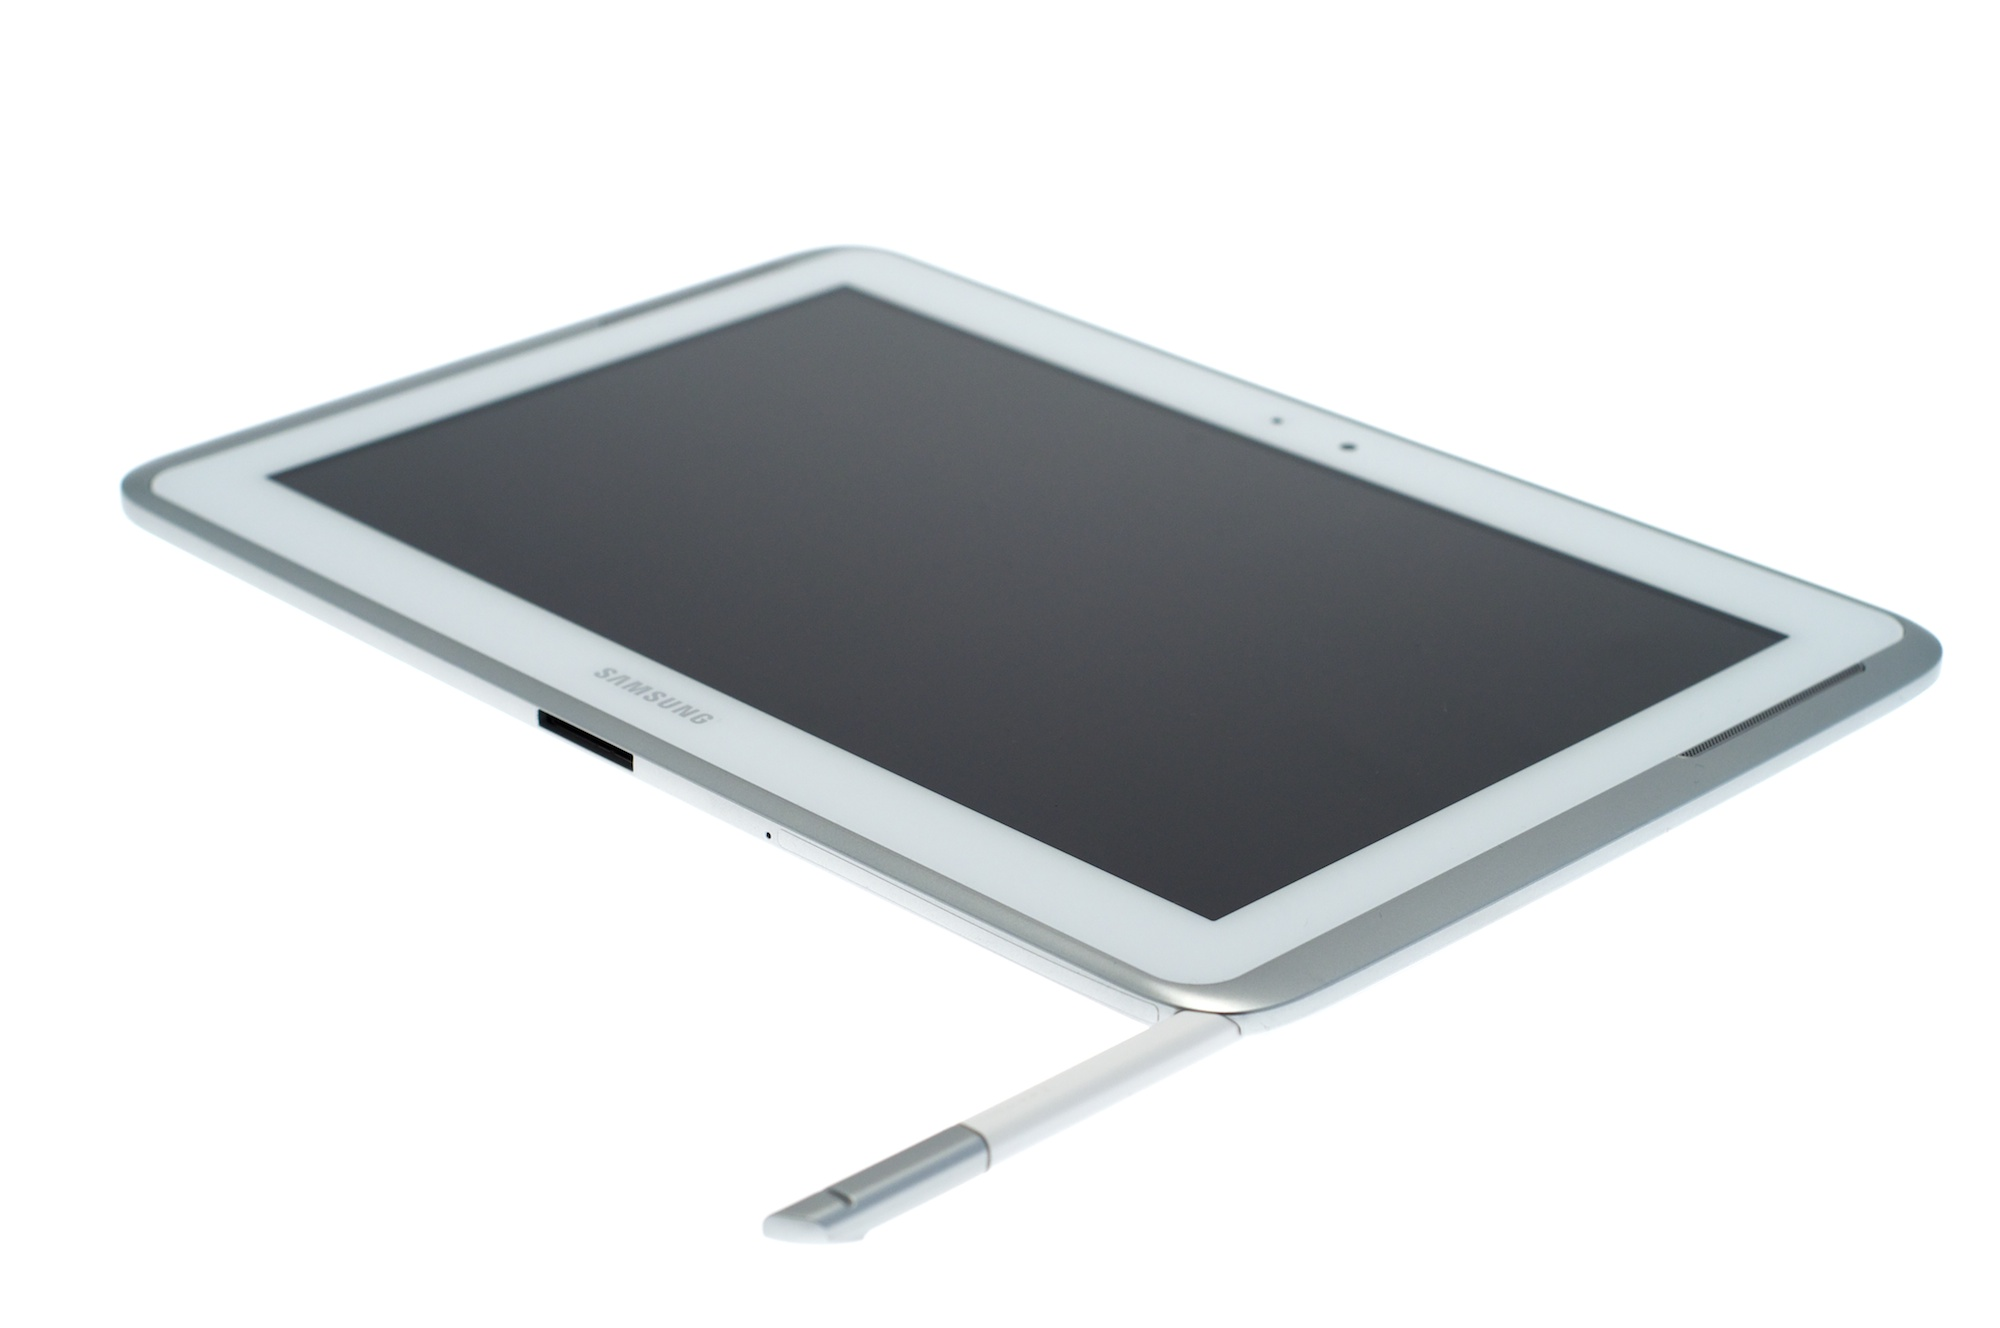 samsung galaxy note 10 1 im test android tablet mit stift. Black Bedroom Furniture Sets. Home Design Ideas